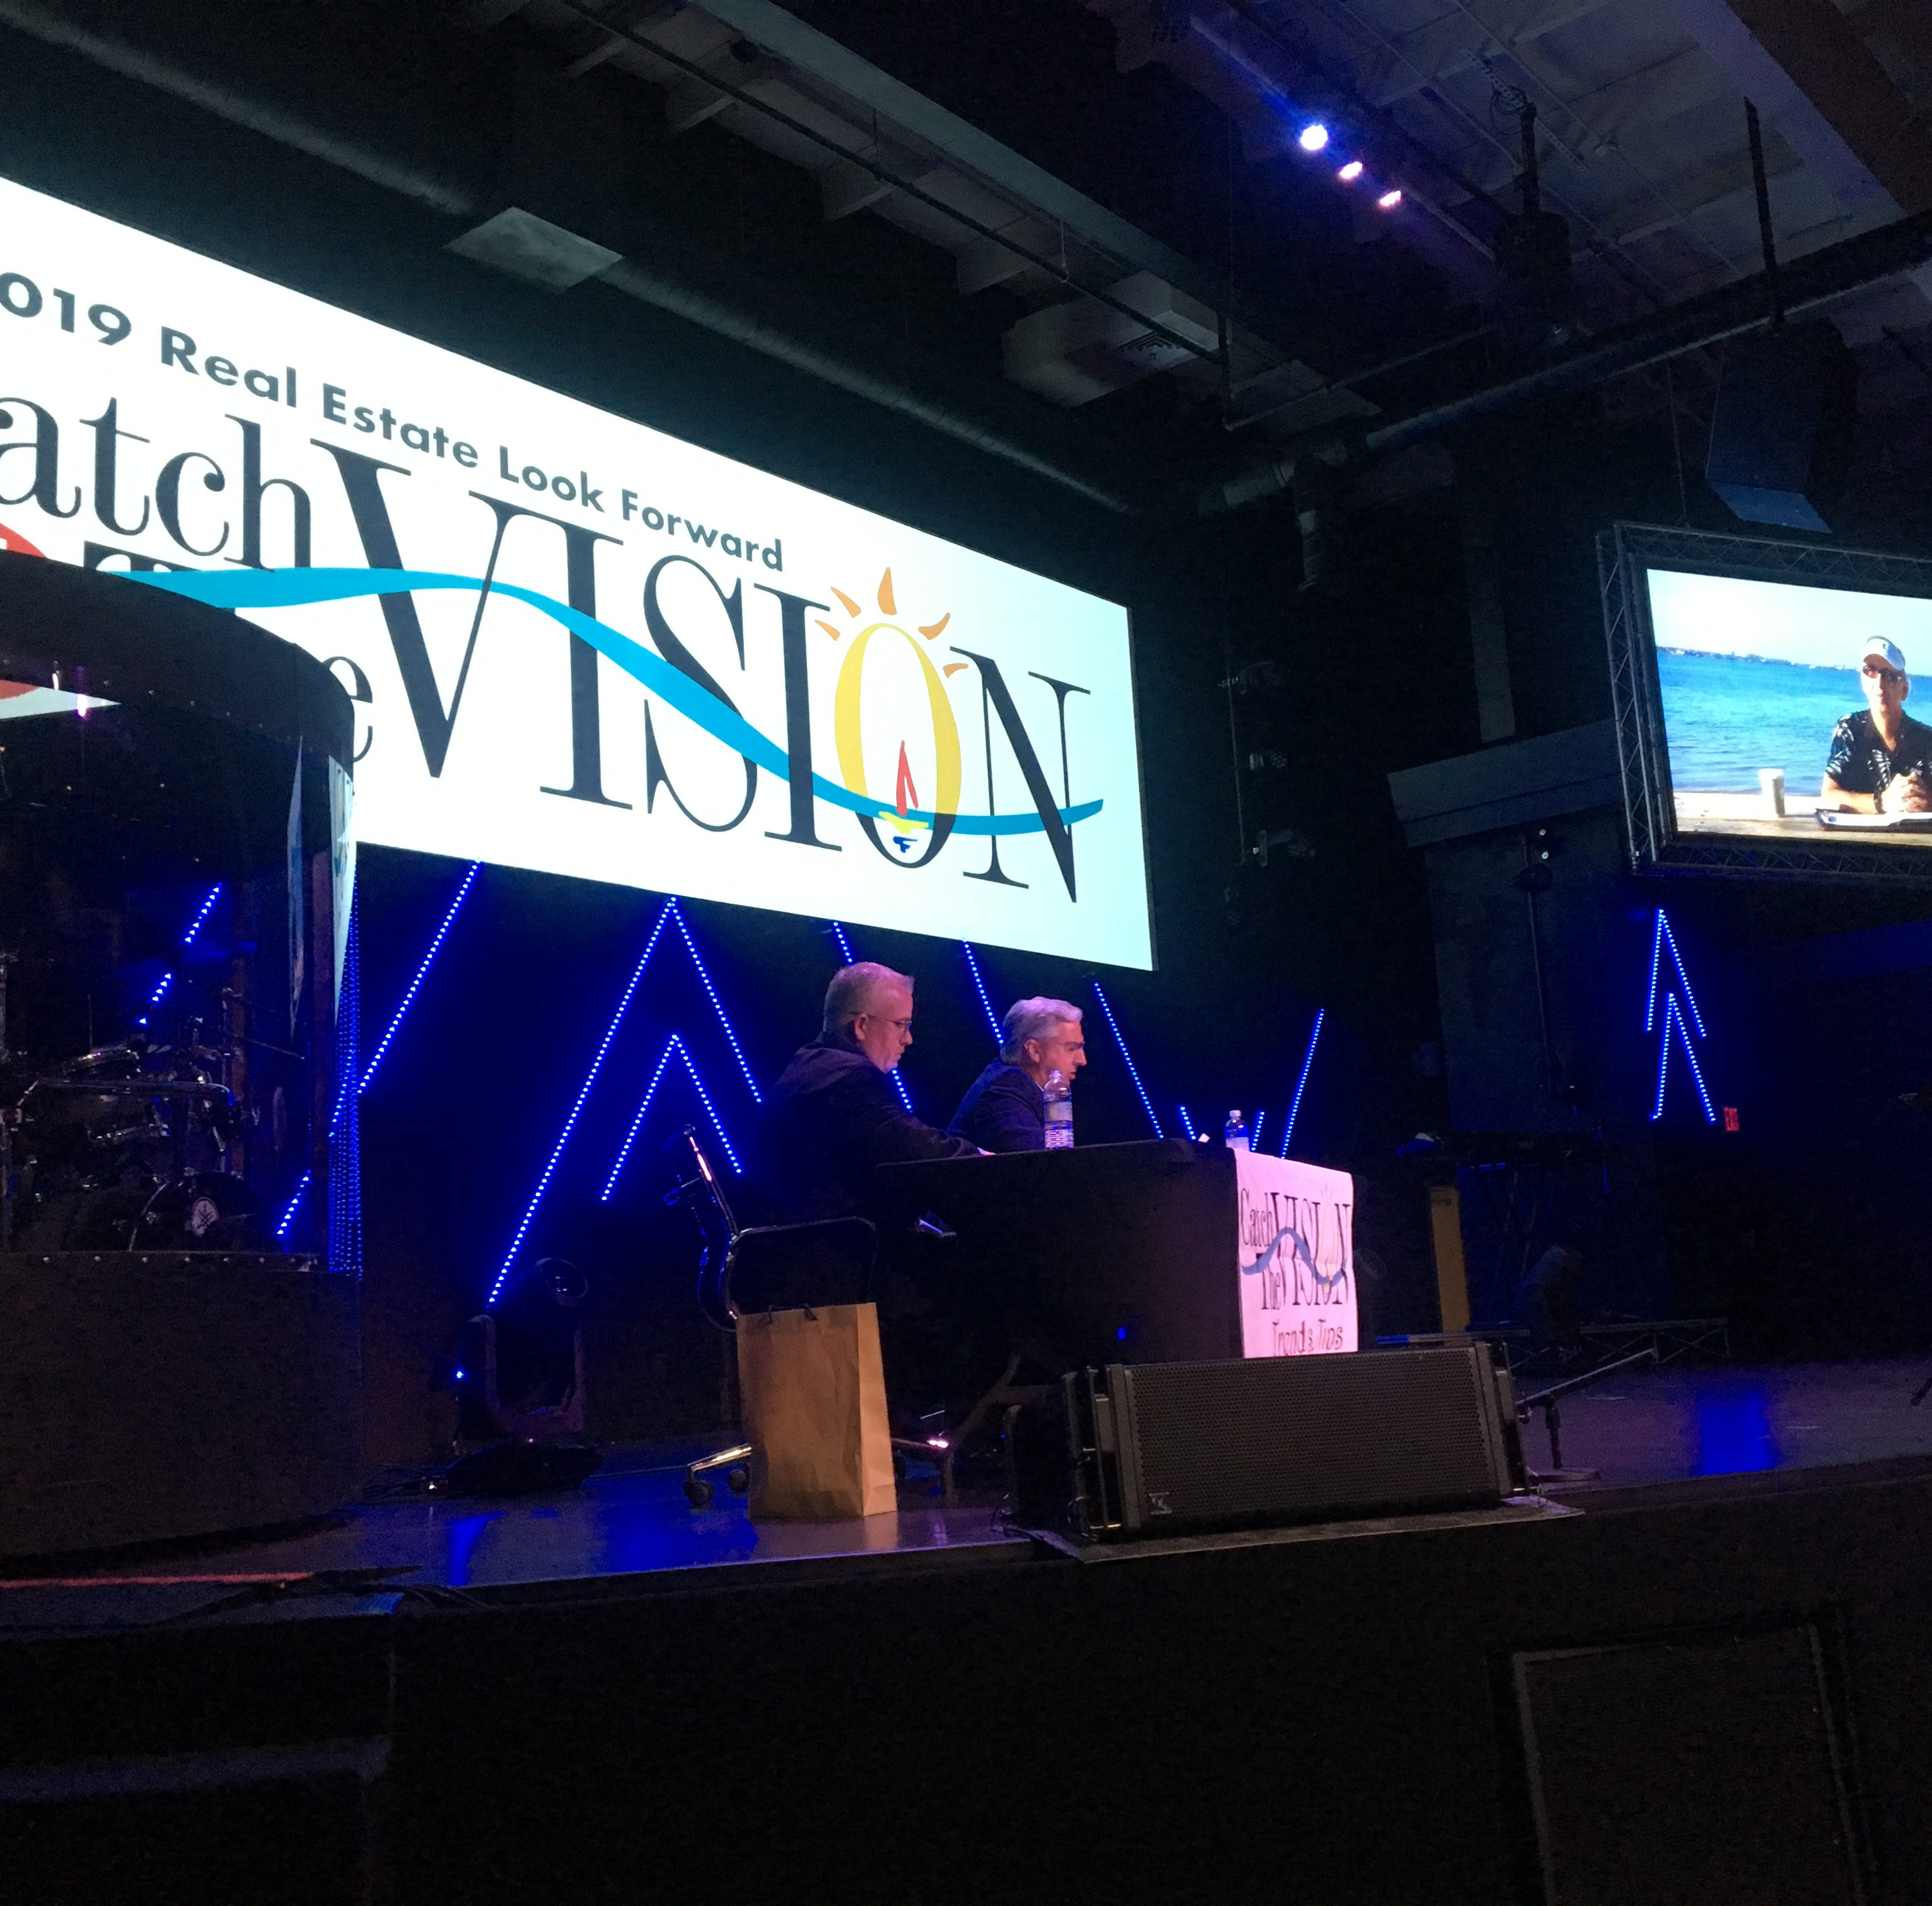 Five takeaways from Cape Coral's Catch the Vision event